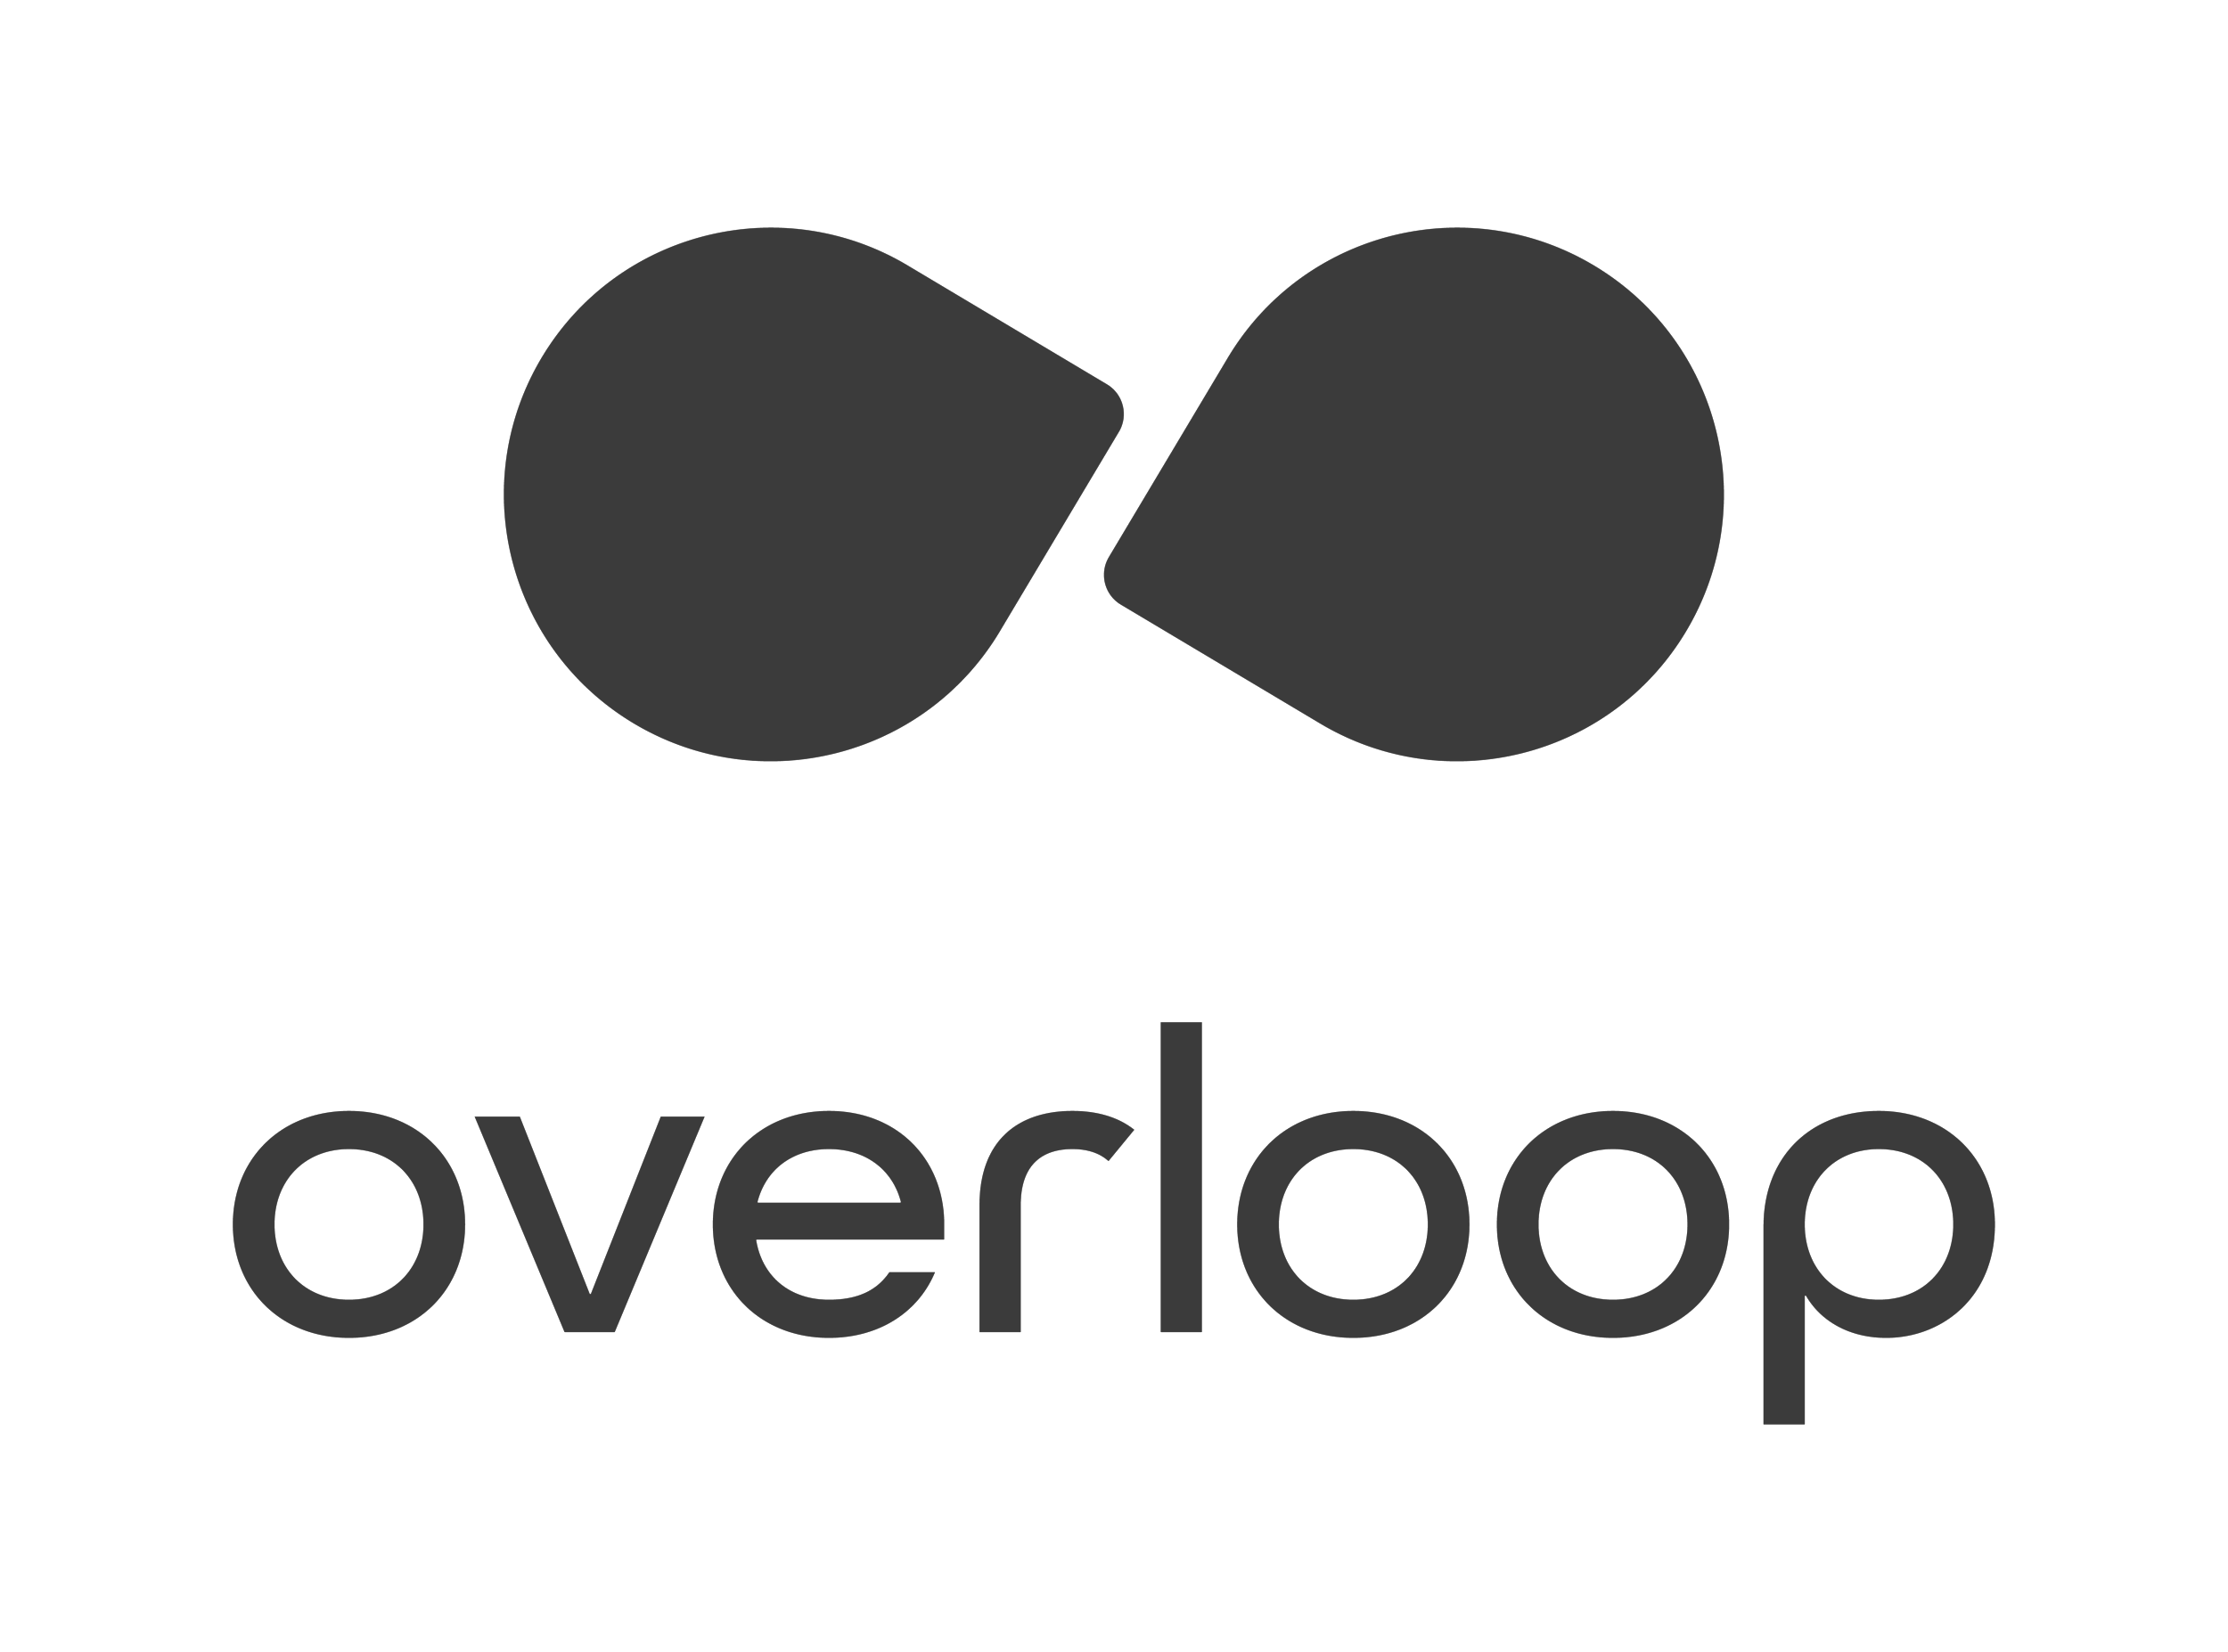 Overloop stacked logo_Off white.png